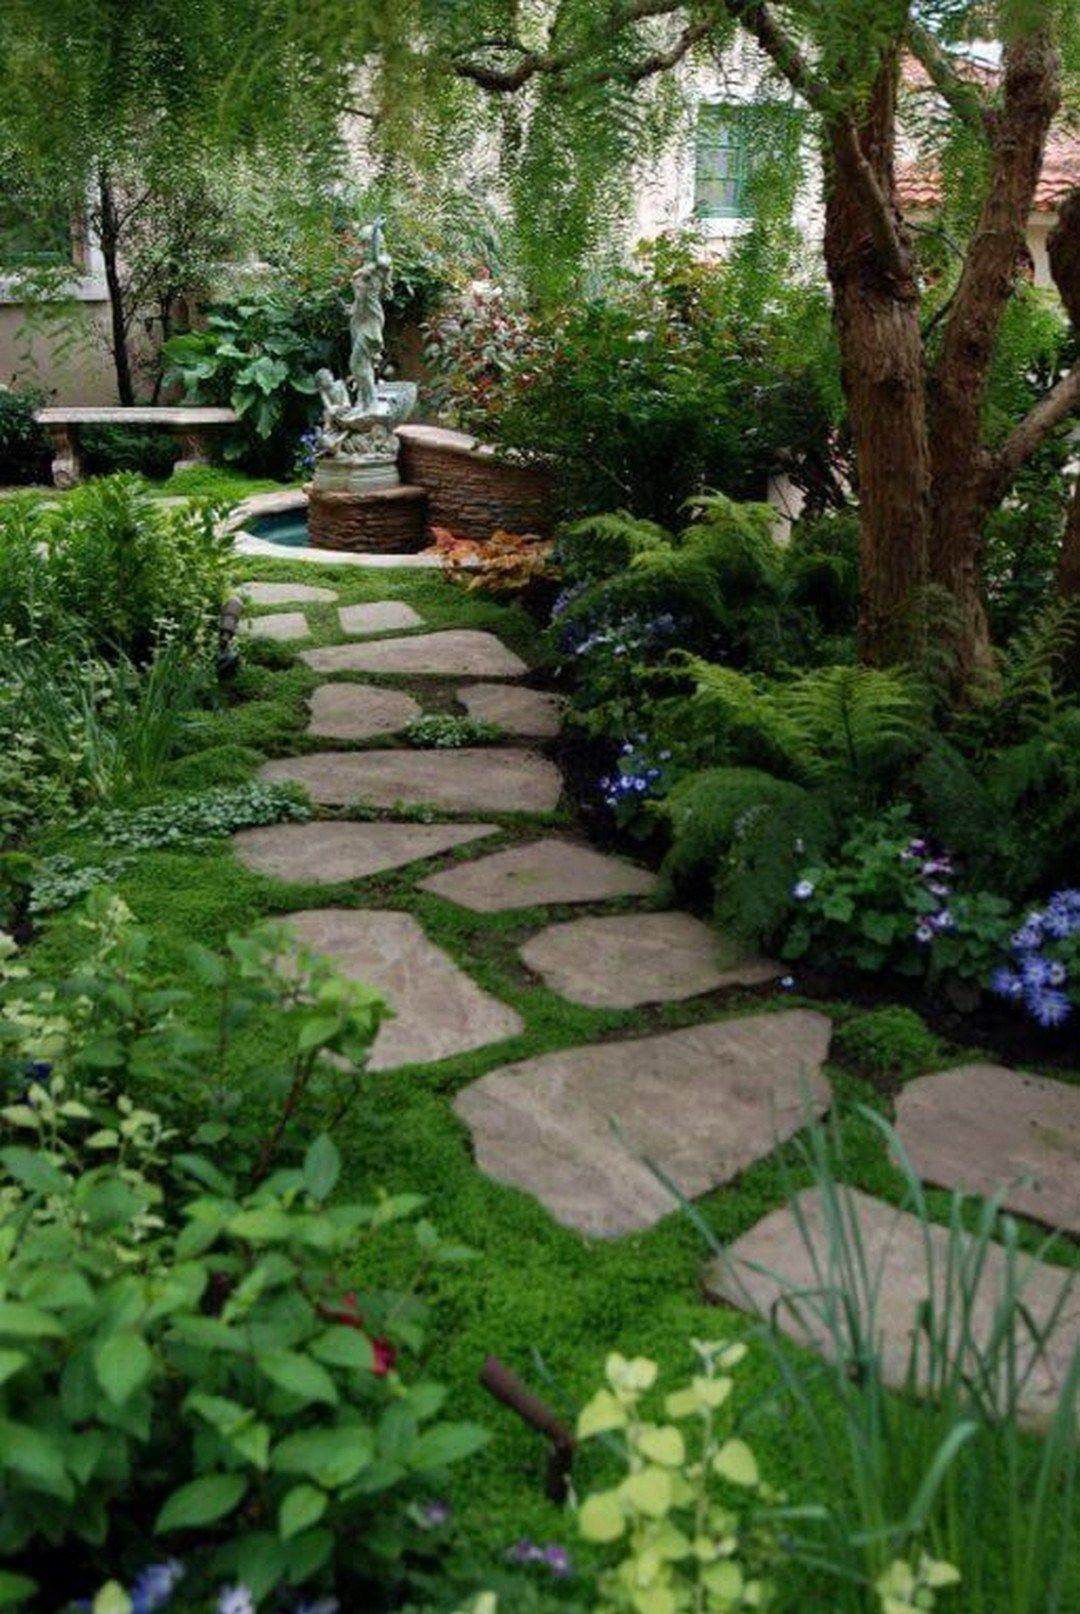 146 beautiful backyard landscaping design ideas 91 on beautiful backyard garden design ideas and remodel create your extraordinary garden id=82986